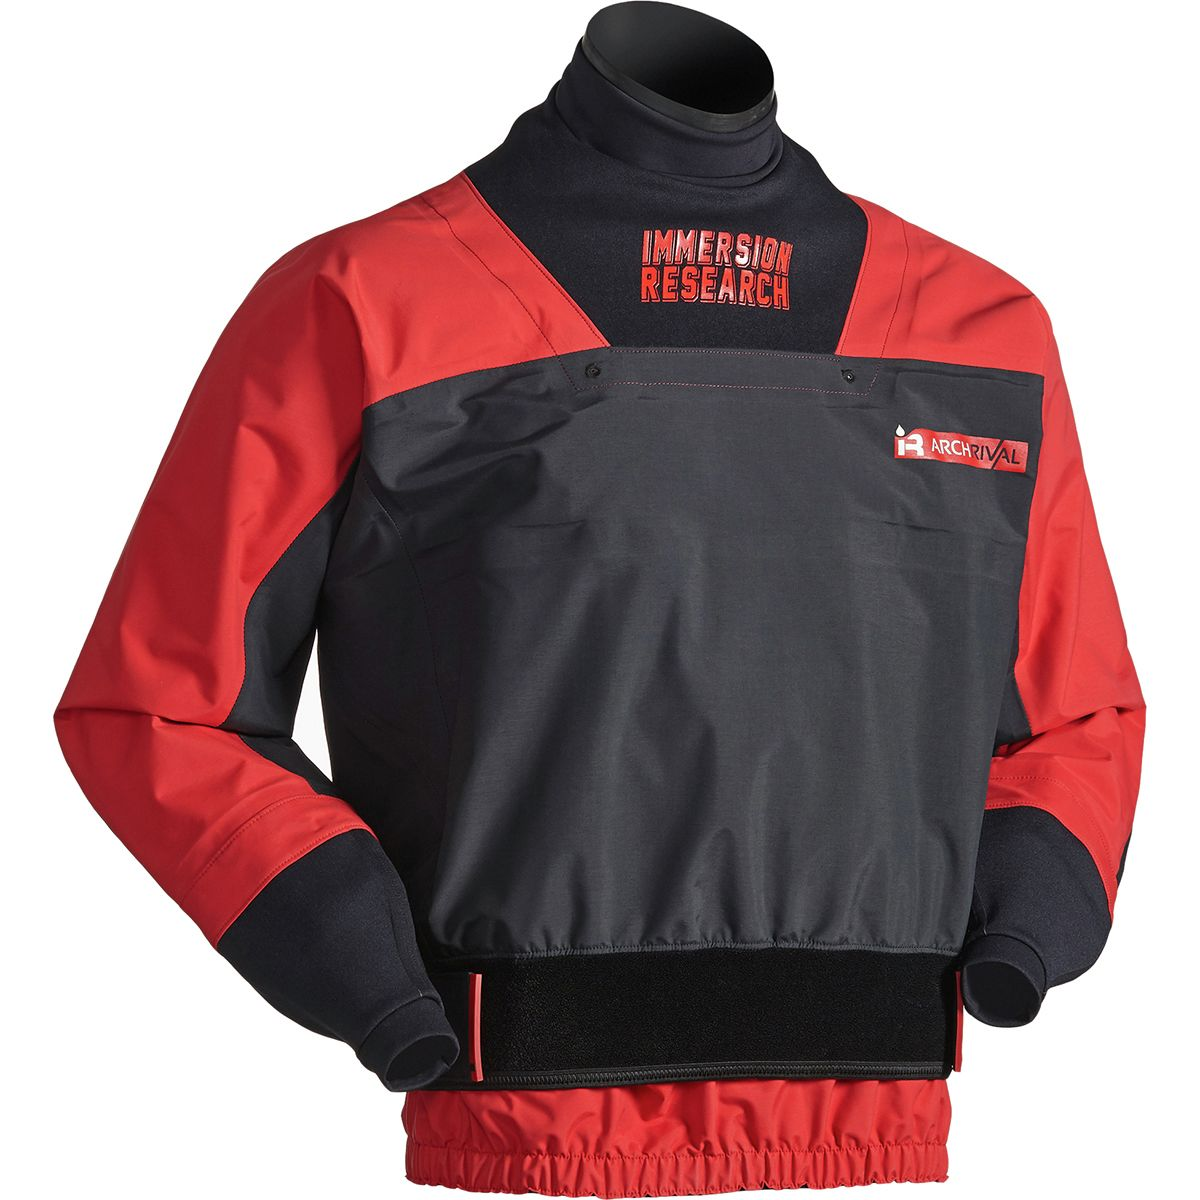 Immersion Research Arch Rival L/S Dry Top